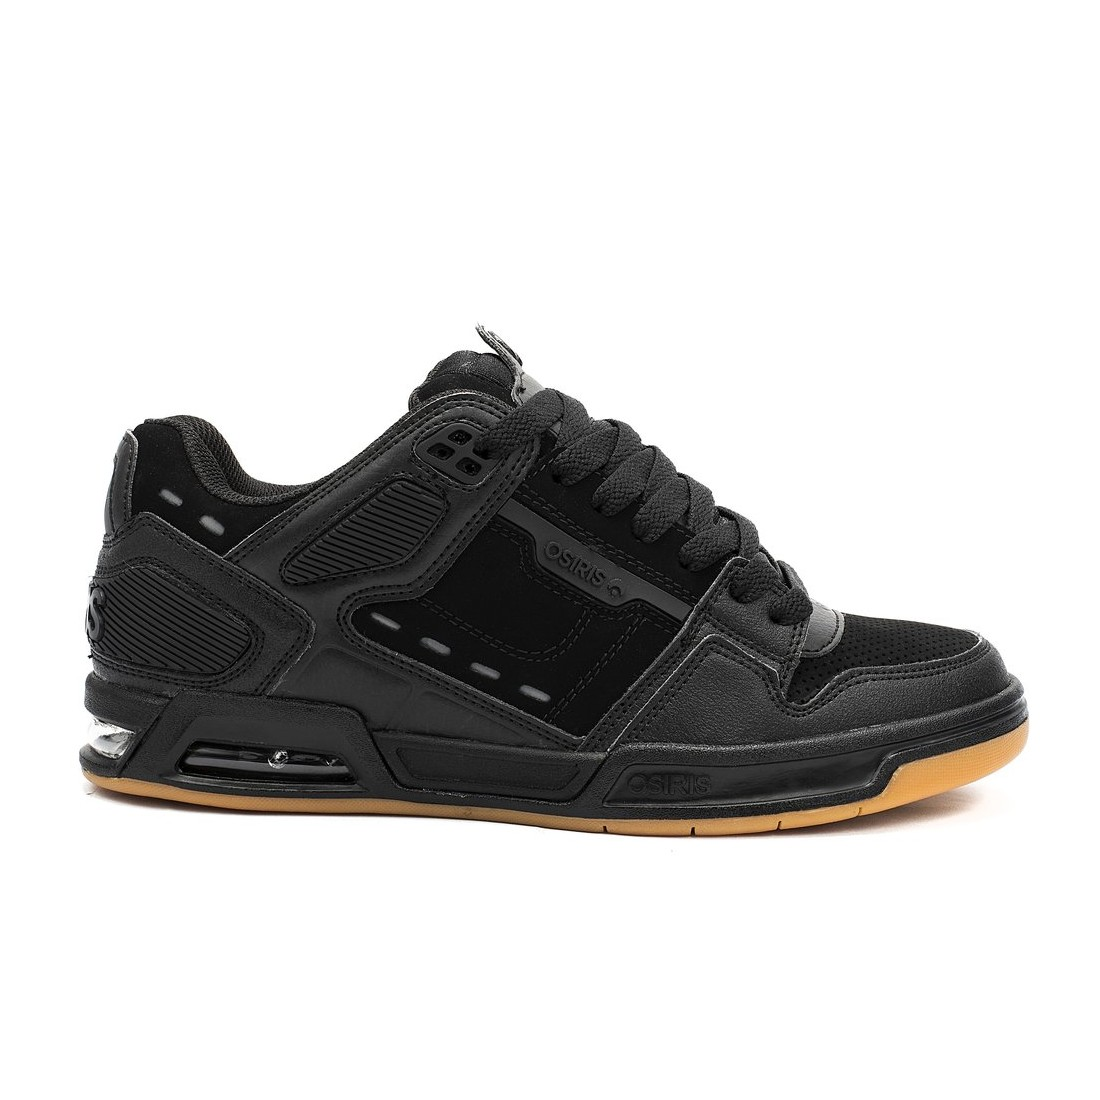 PERIL black gum